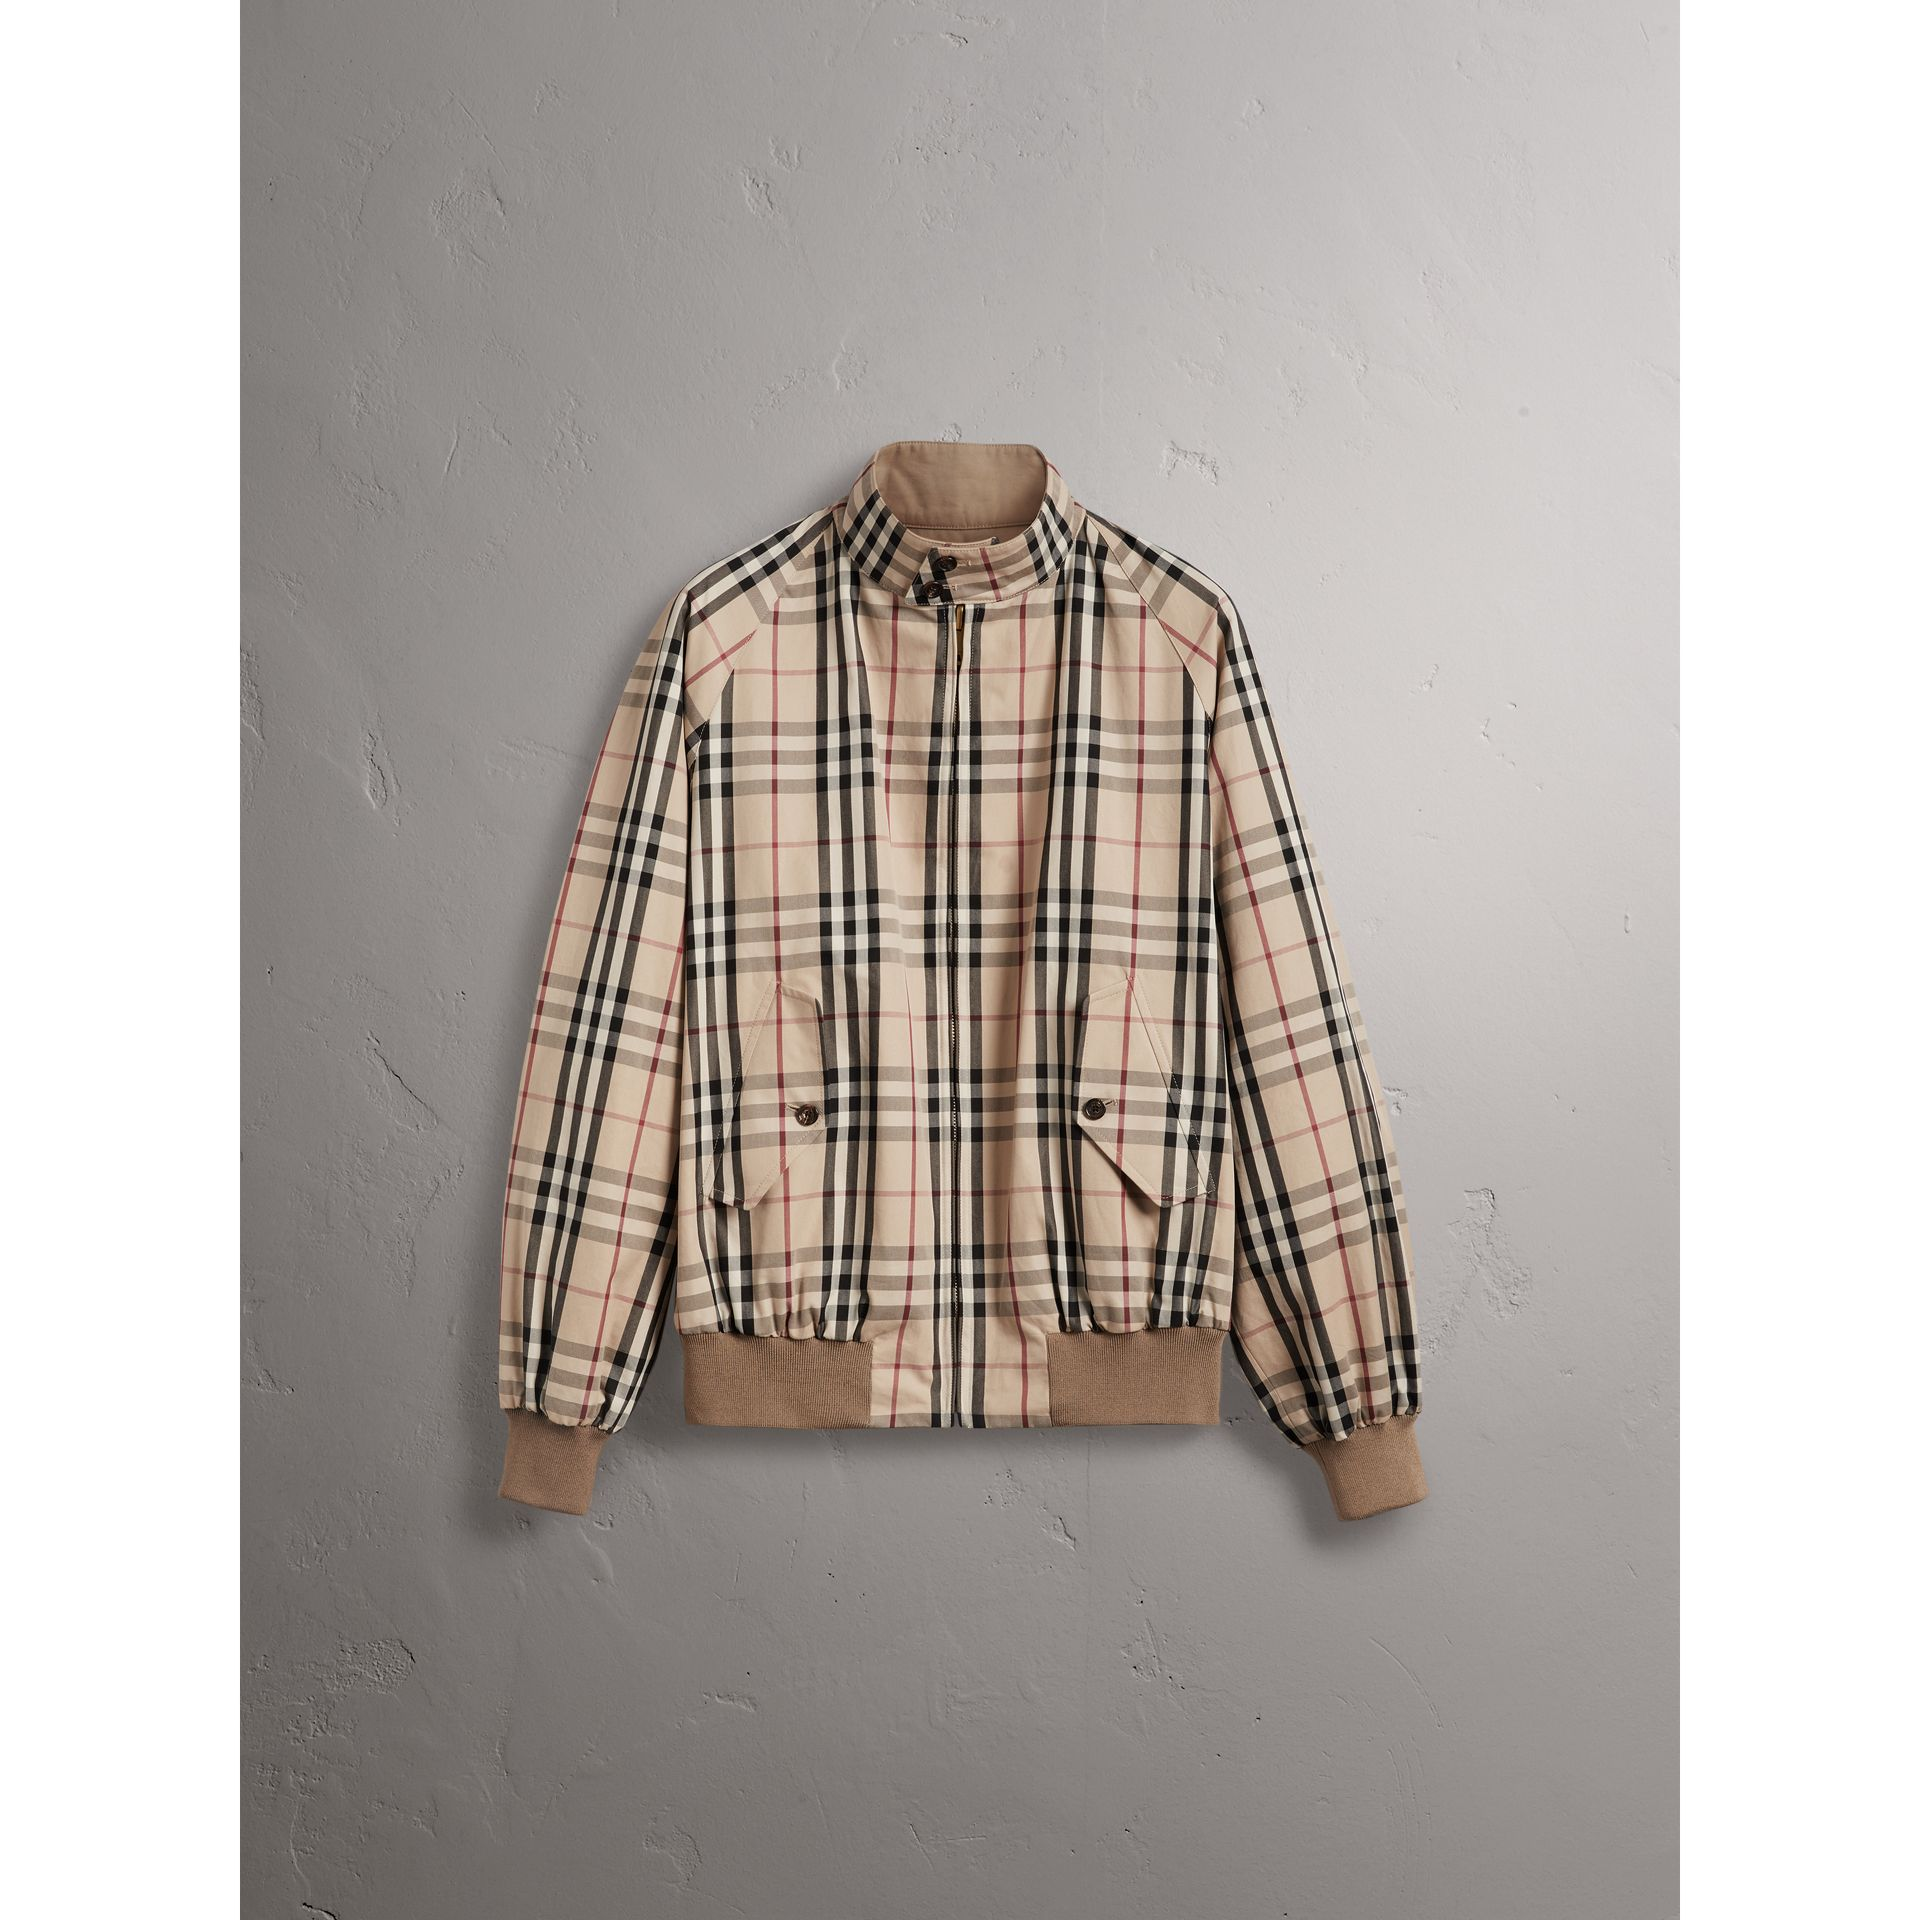 Gosha x Burberry Reversible Harrington Jacket in Honey | Burberry Australia - gallery image 8